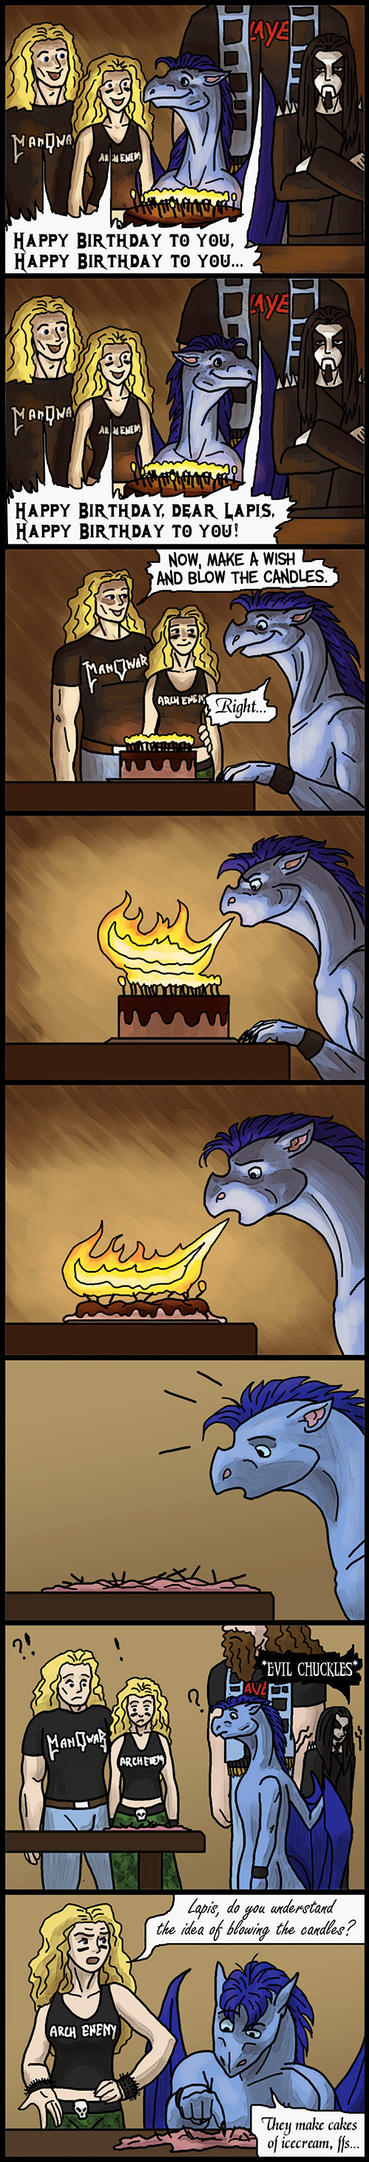 7 - The Magician's Birthday by lapis-lazuri